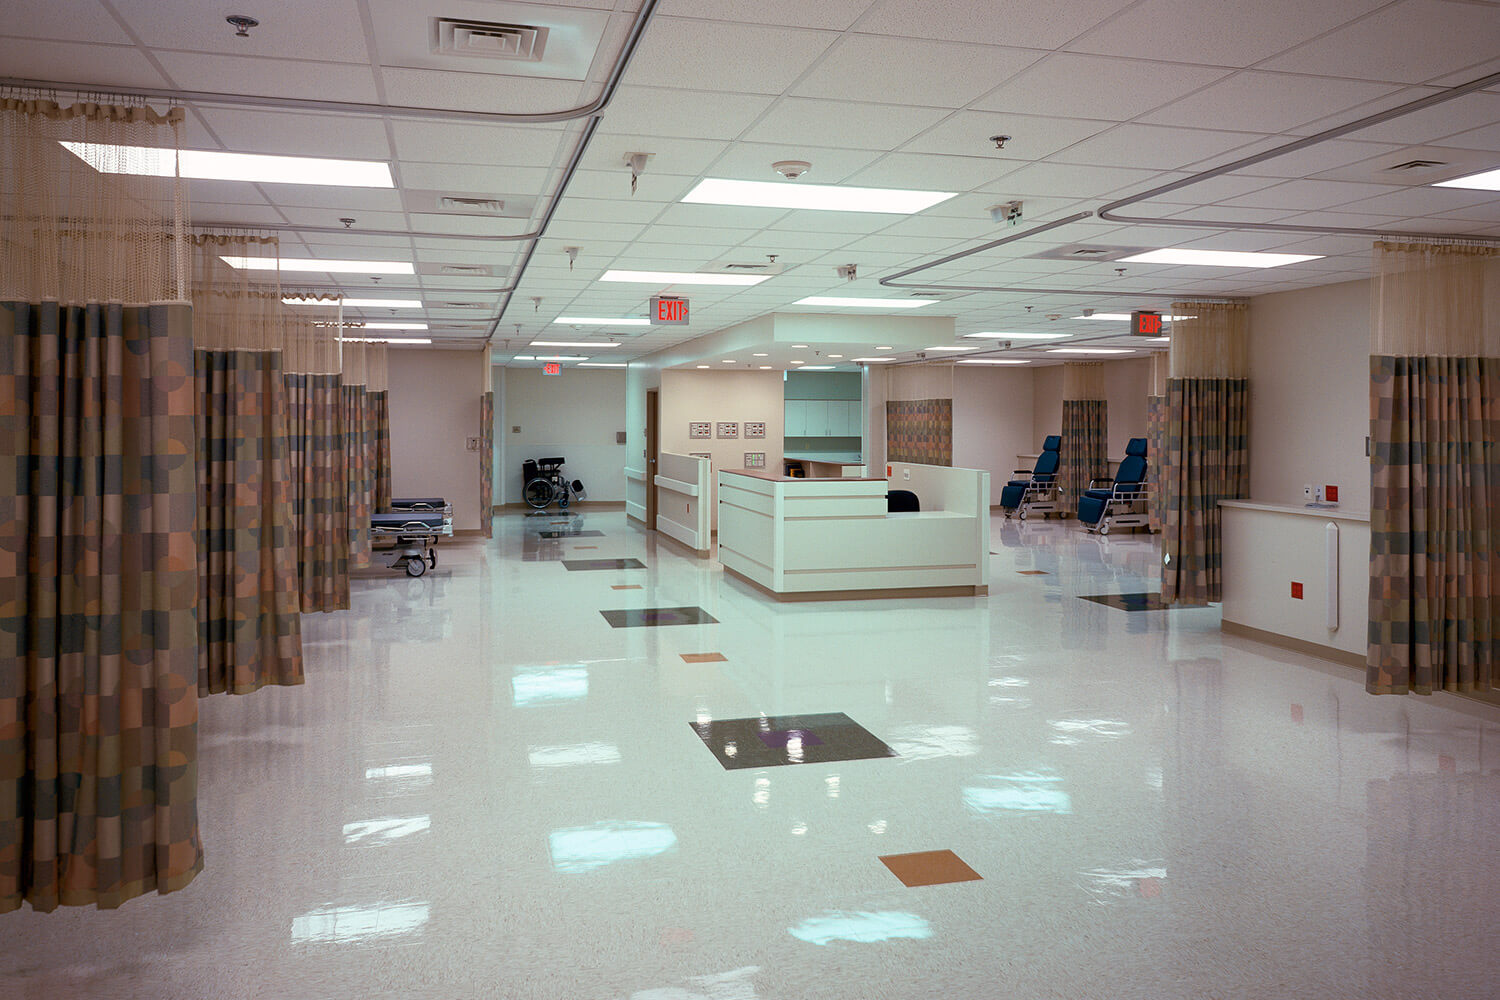 North Shore Ambulatory Surgery Center interior